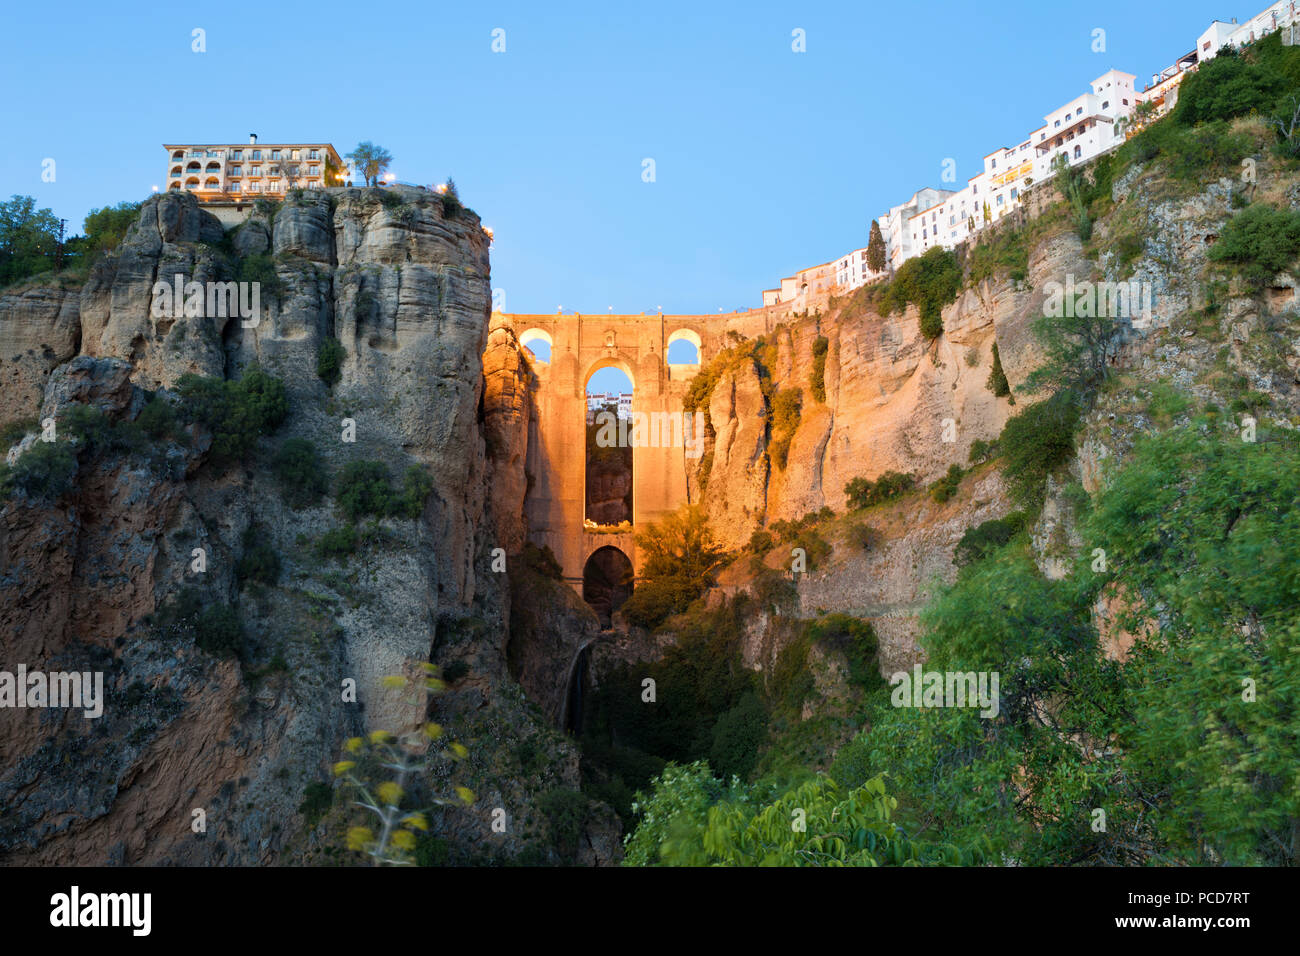 Puente Nuevo (New Bridge) floodlit at night and the white town perched on cliffs, Ronda, Andalucia, Spain, Europe - Stock Image